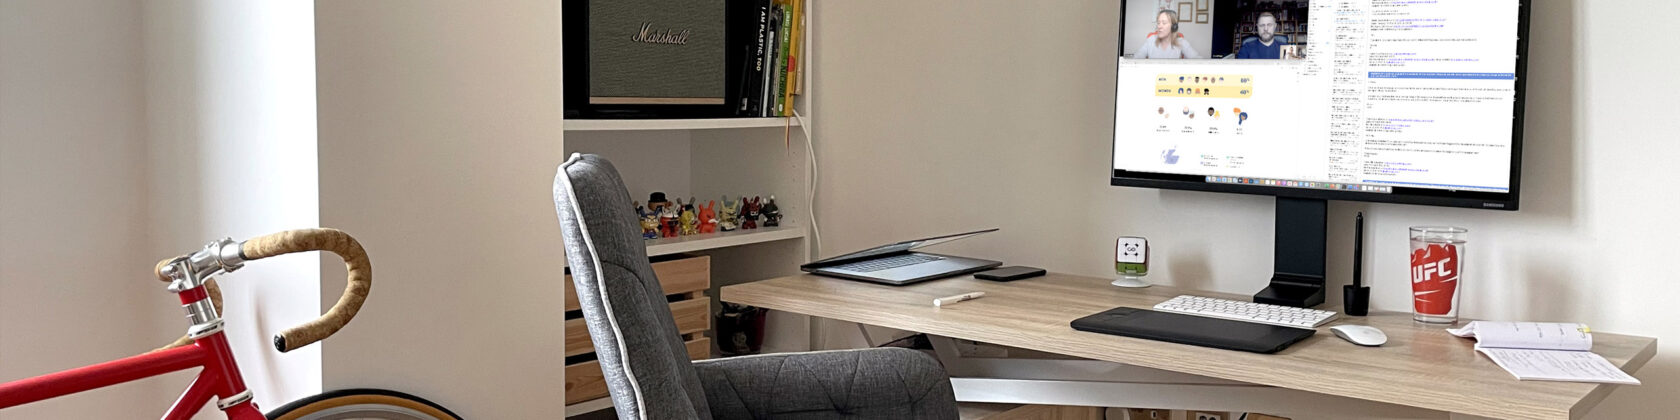 Home office with desk, computer monitor, chair and bicycle